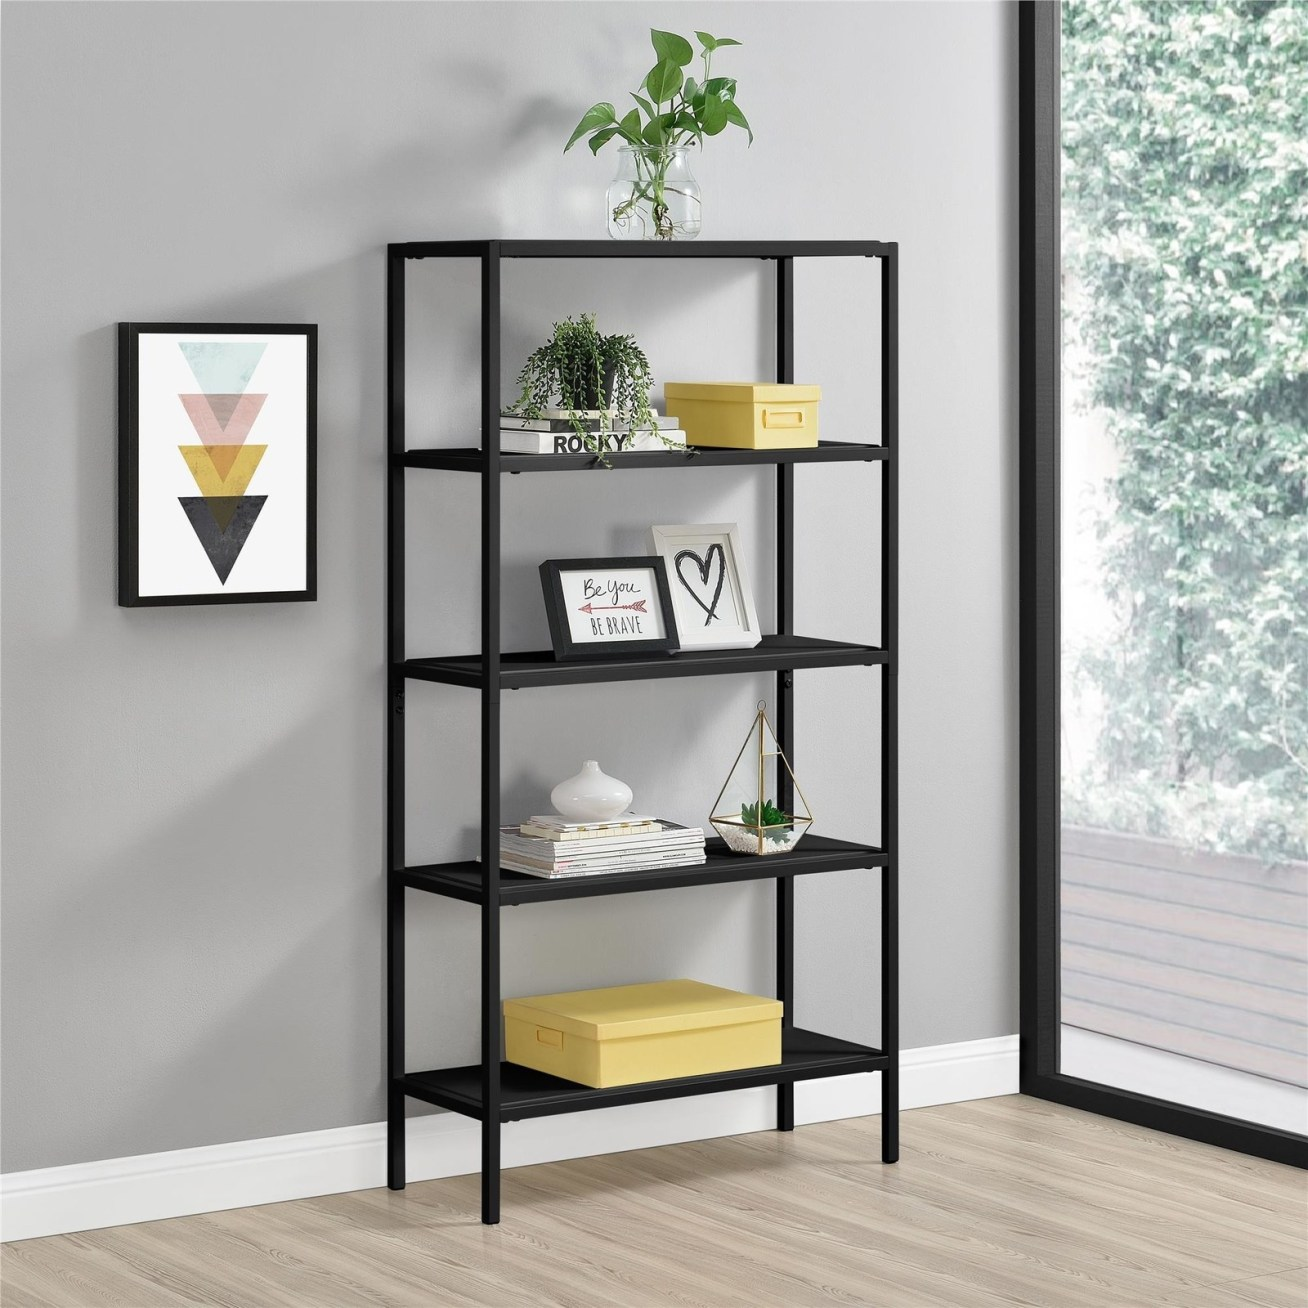 "Promising review: ""After assembling this bookcase, I am still very pleased with my selection. It has black metal posts and very dark brown wooden shelves. This bookcase is a little over 5 feet tall and about 30 inches wide. Small artwork, statues, and books would look lovely on this bookcase. A safety strap was included in the box, so the bookcase can be attached to the wall. This keeps small children safer so the bookcase cannot fall on them. This bookcase would go nicely in a study, a living room, and also in the bedroom."" —SJLee